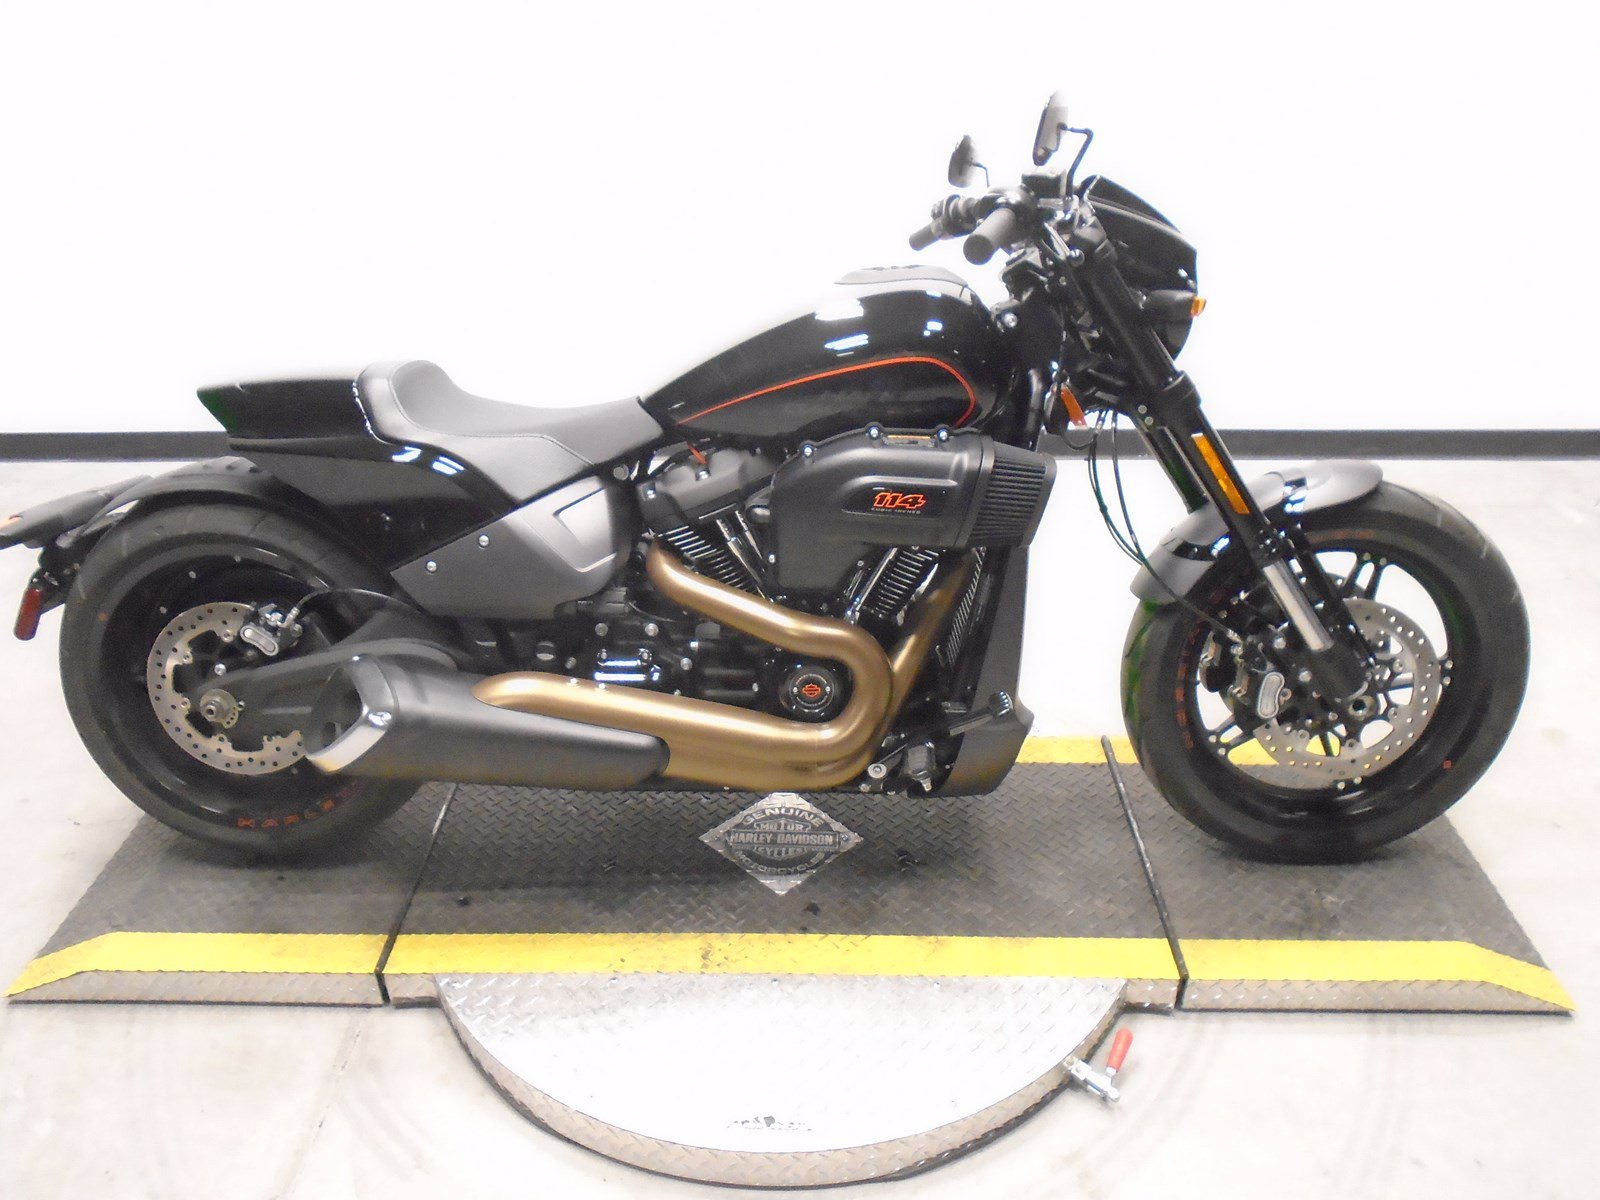 Pre-Owned 2019 Harley-Davidson Softail FXDRS 114